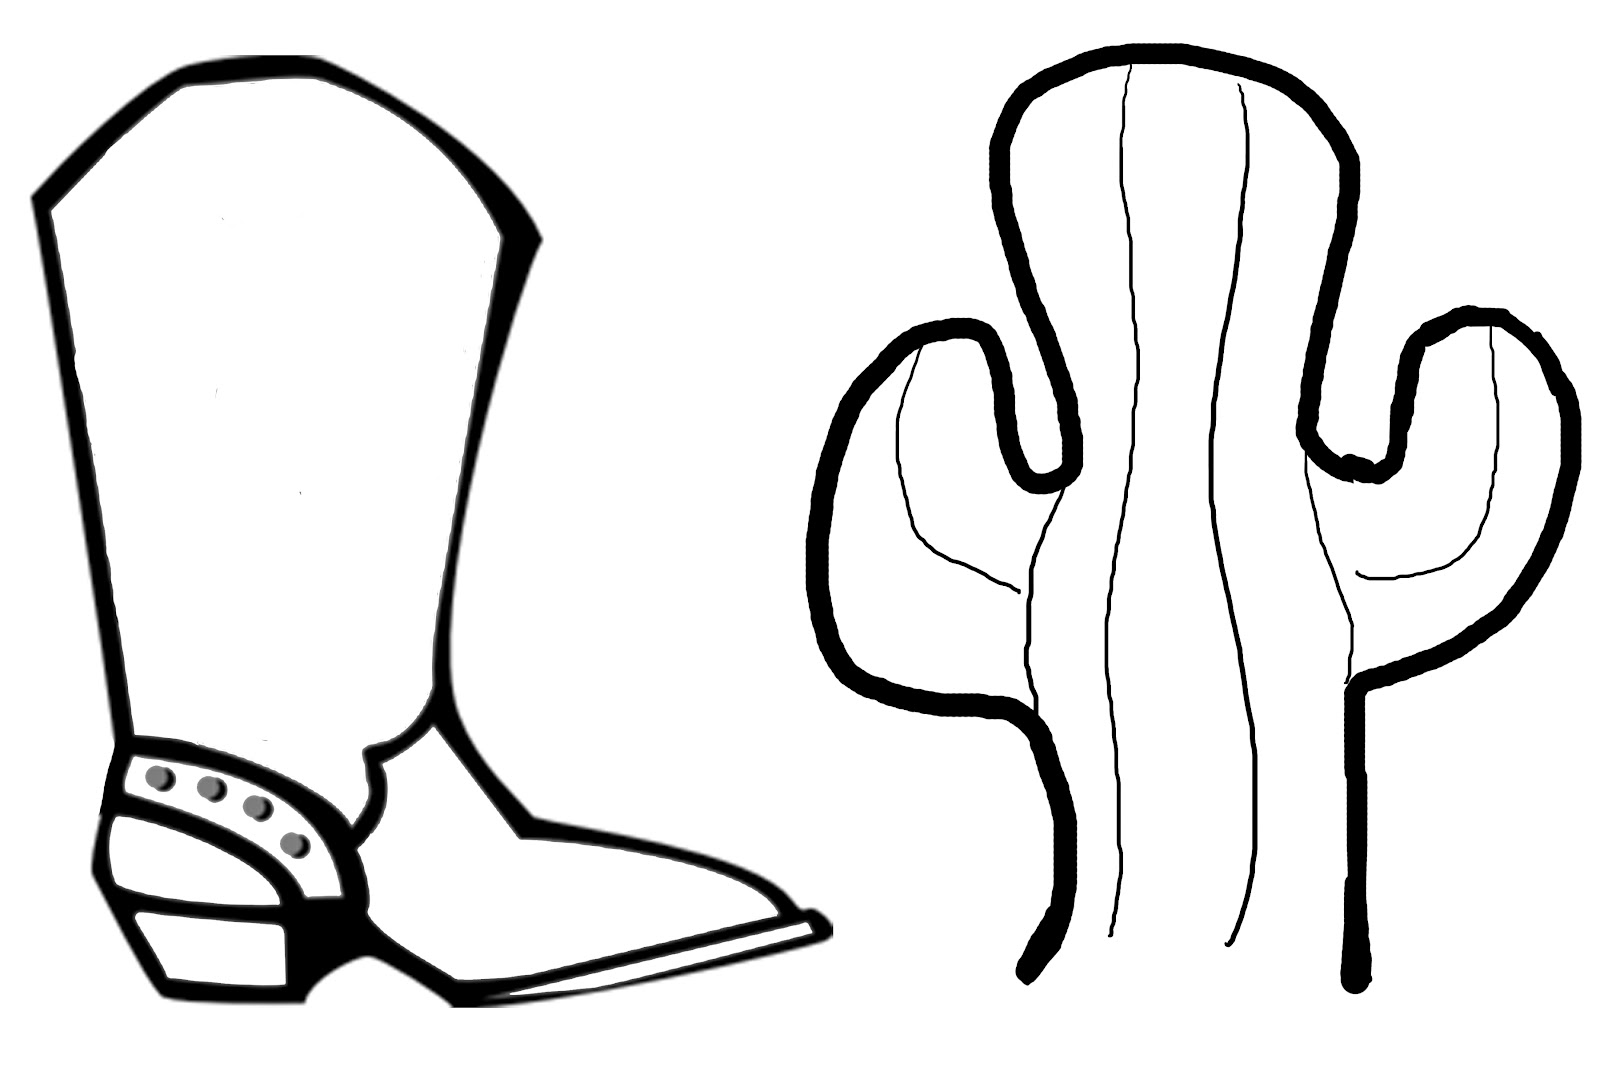 Drawings of cowboy boots clip art library.